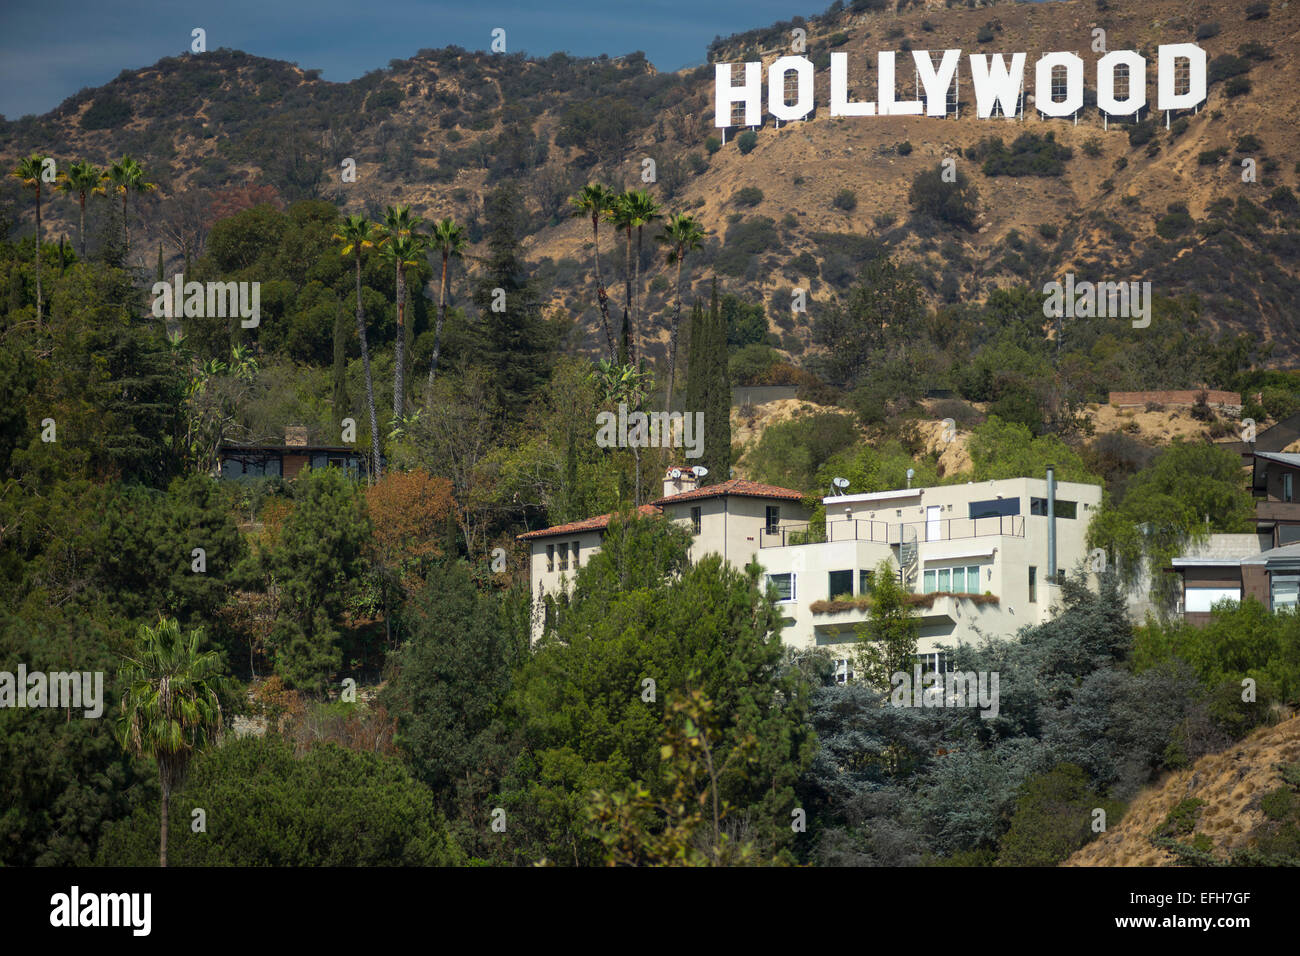 mansions hollywood sign mount lee hollywood hills los. Black Bedroom Furniture Sets. Home Design Ideas